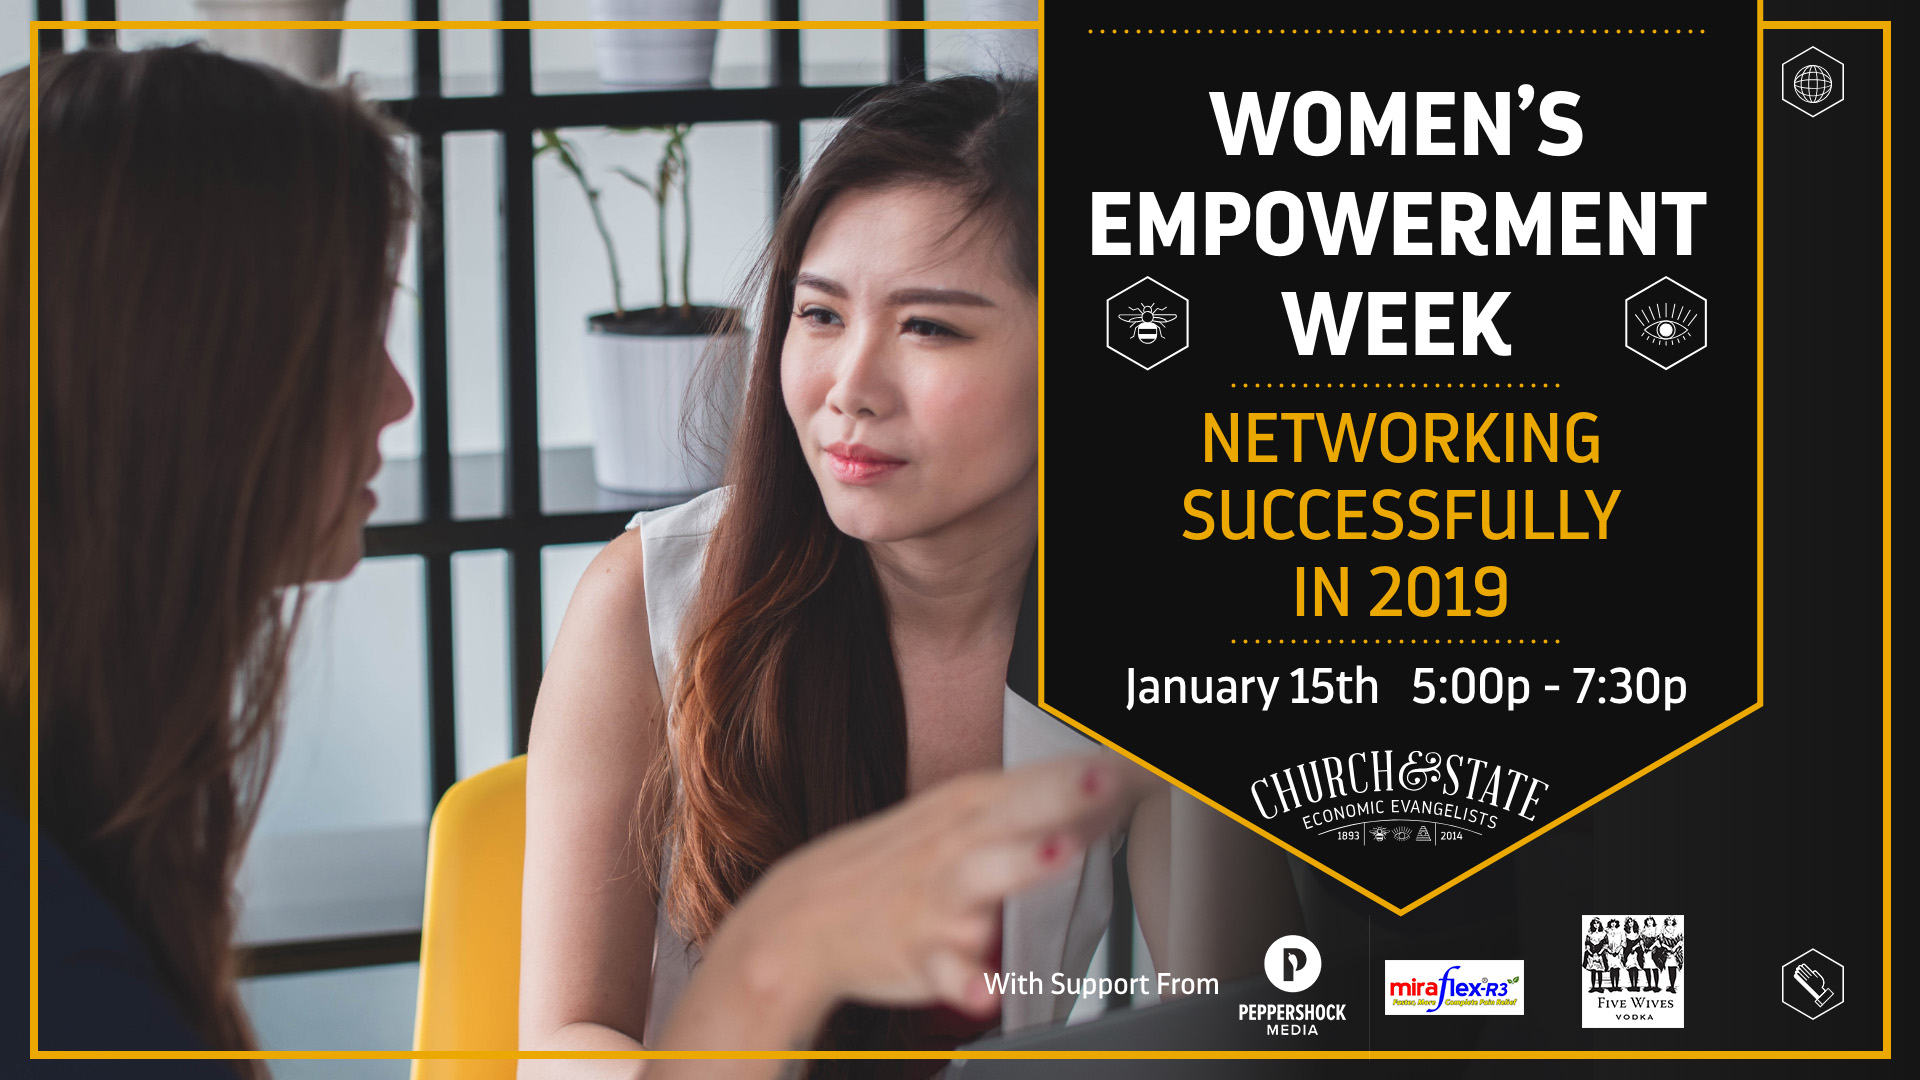 Women's Empowerment Week: Networking Successfully in 2019